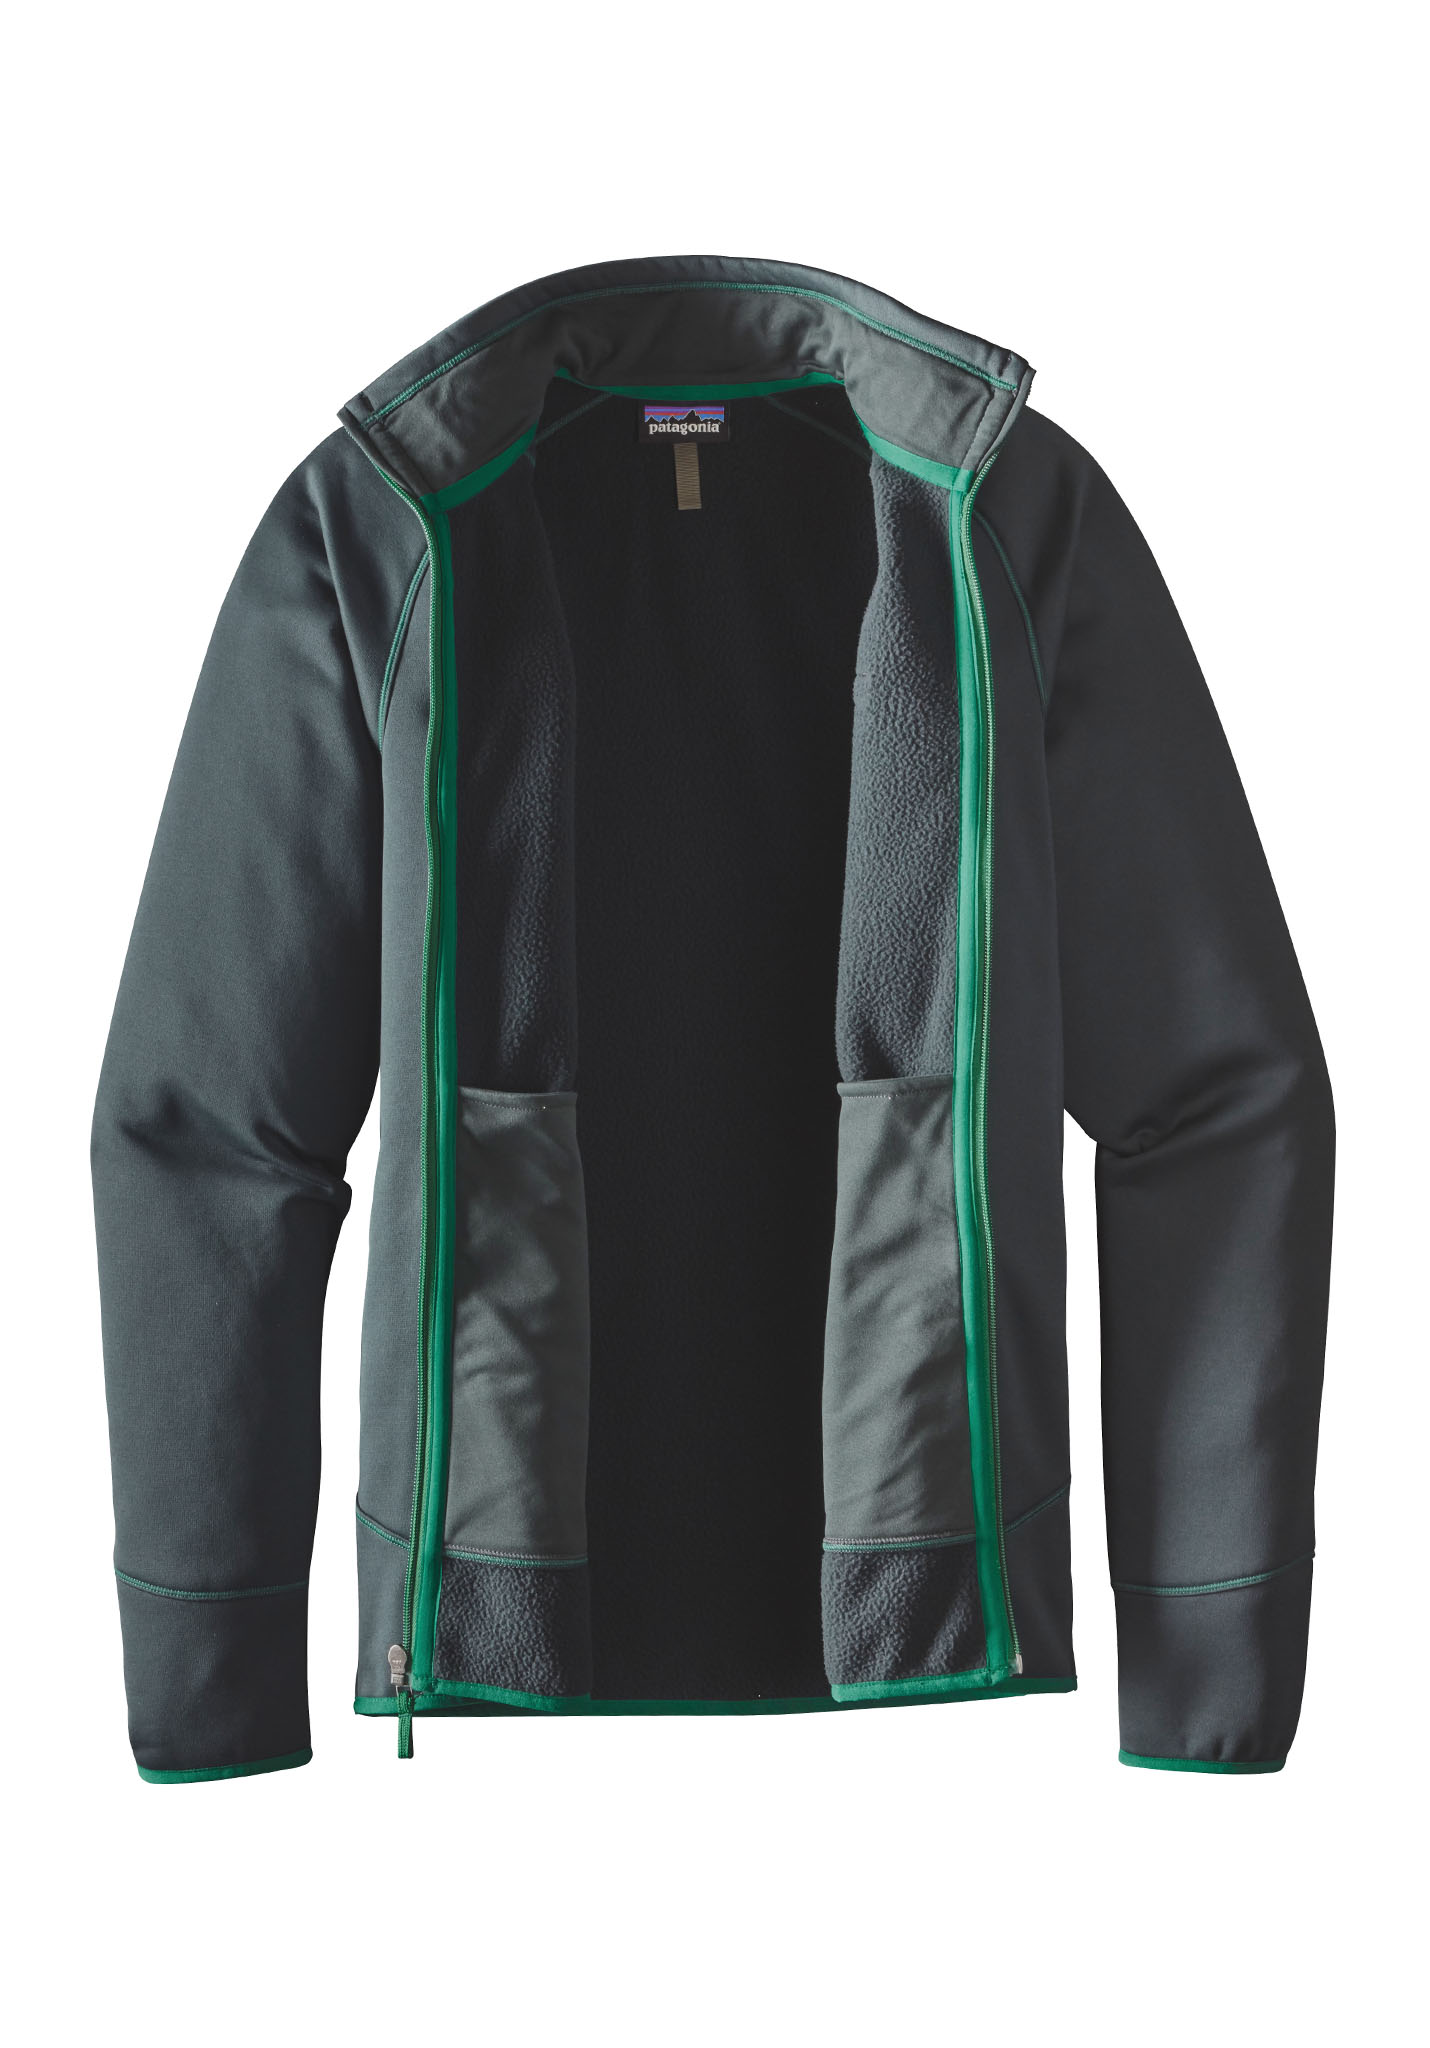 patagonia tech fleece herren sweatjacke jacke ebay. Black Bedroom Furniture Sets. Home Design Ideas